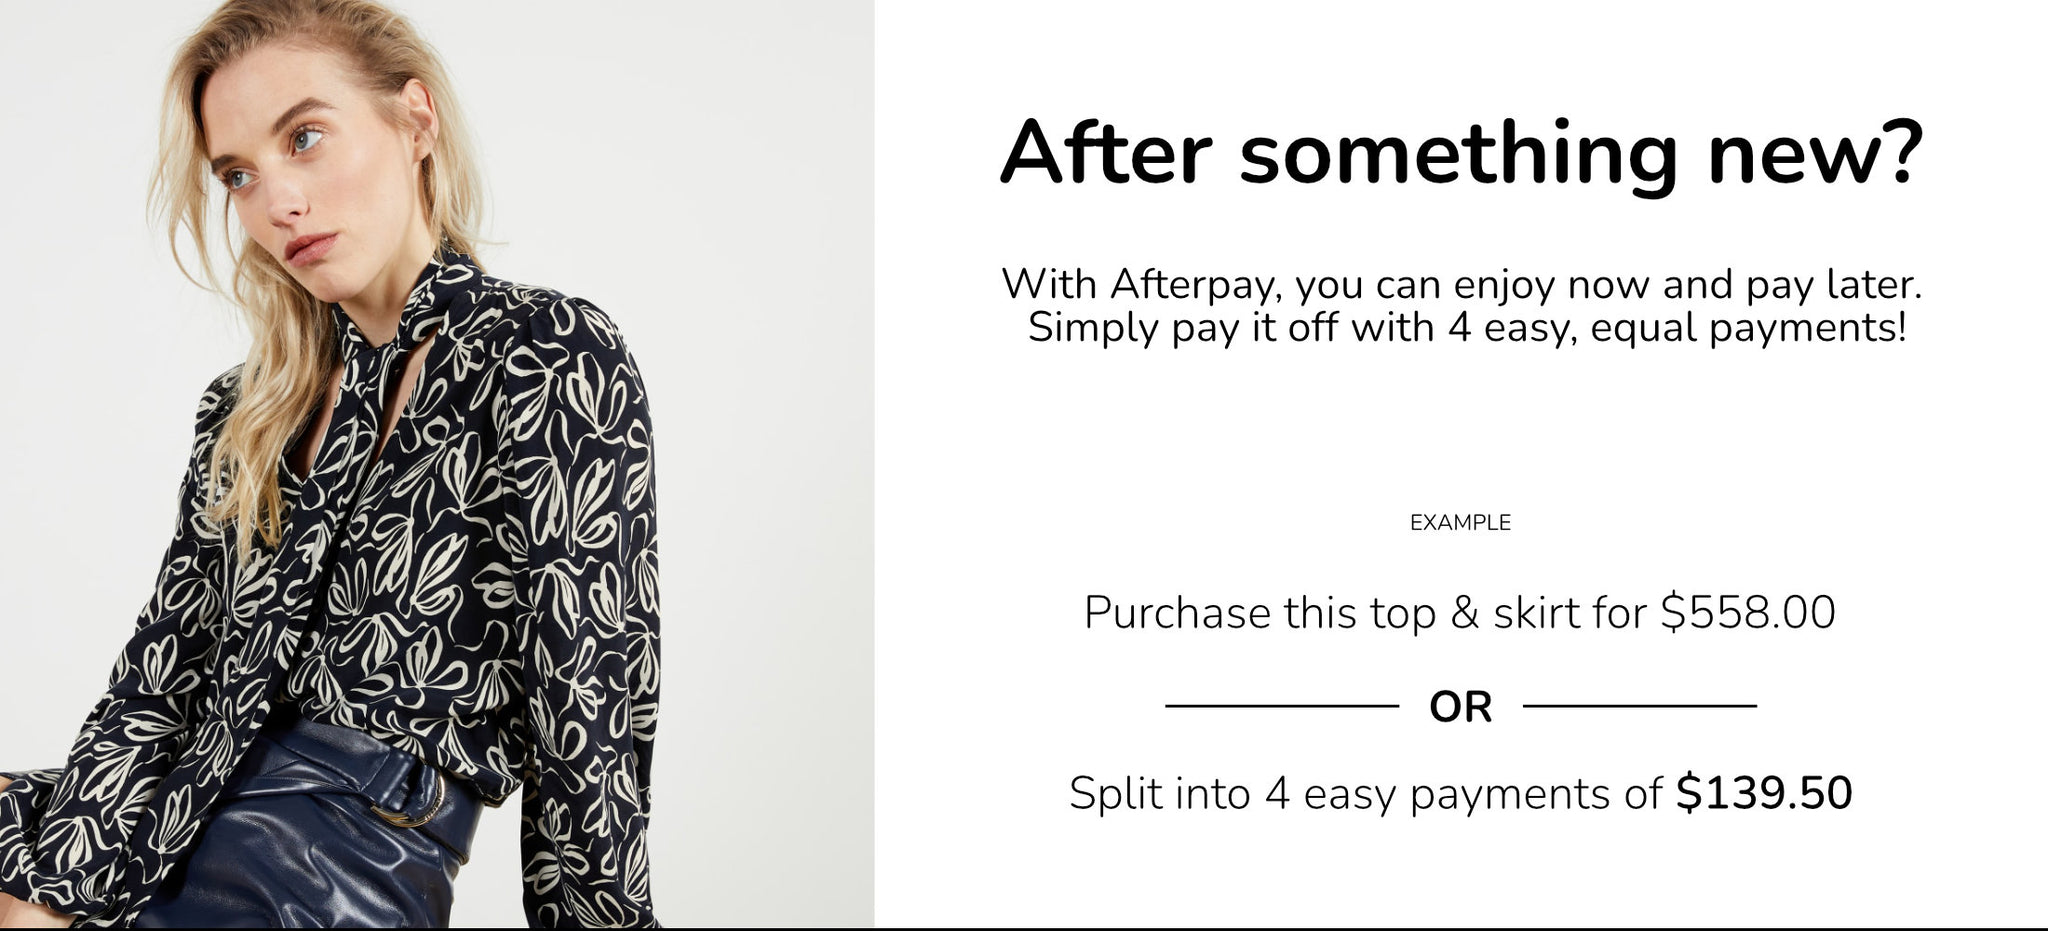 After something new? Checkout with Afterpay to pay for you purchase with 4 easy equal payments.